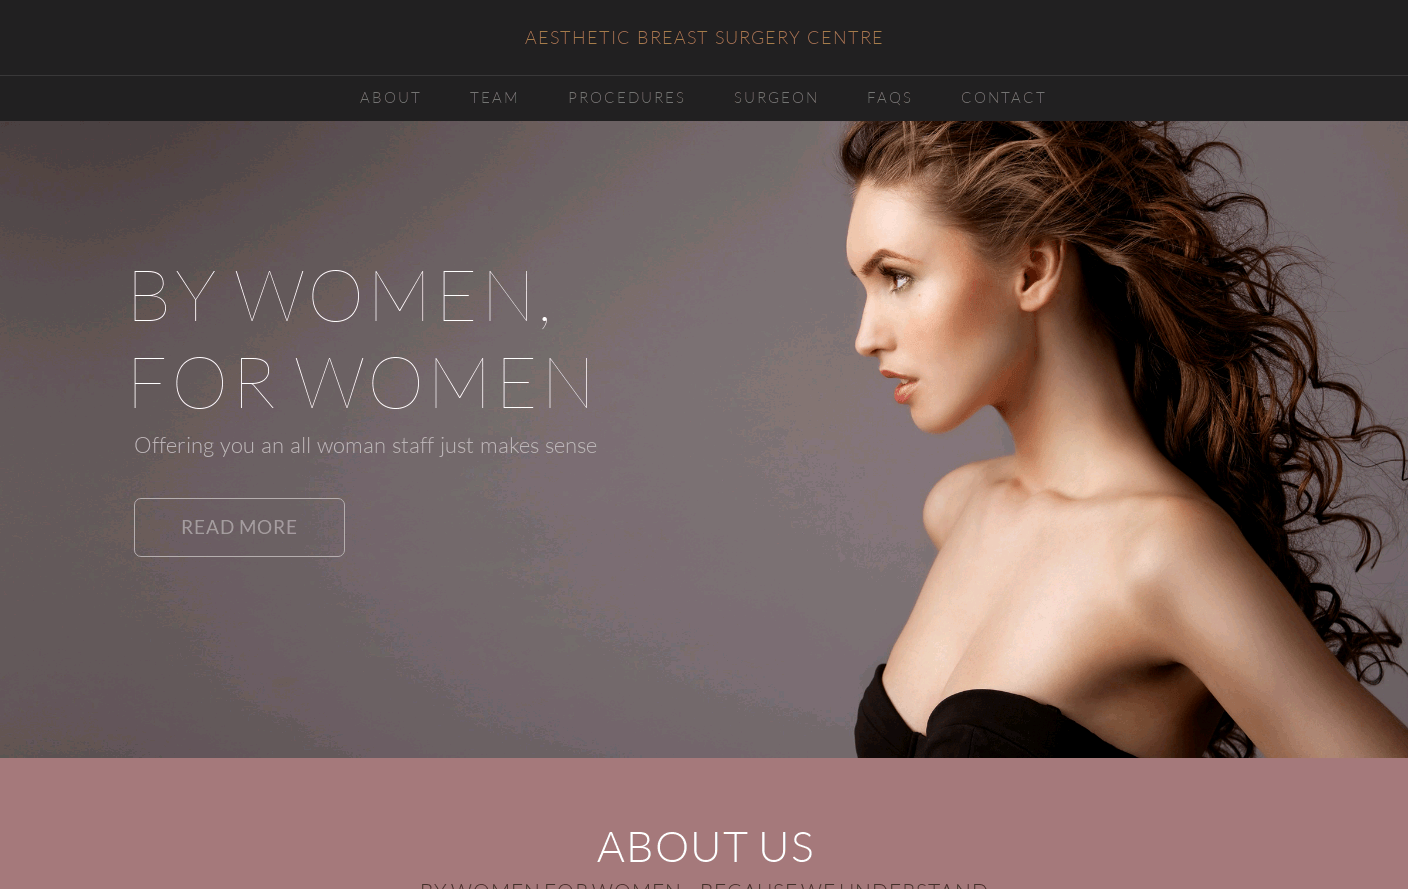 Aesthetic Breast Surgery Centre